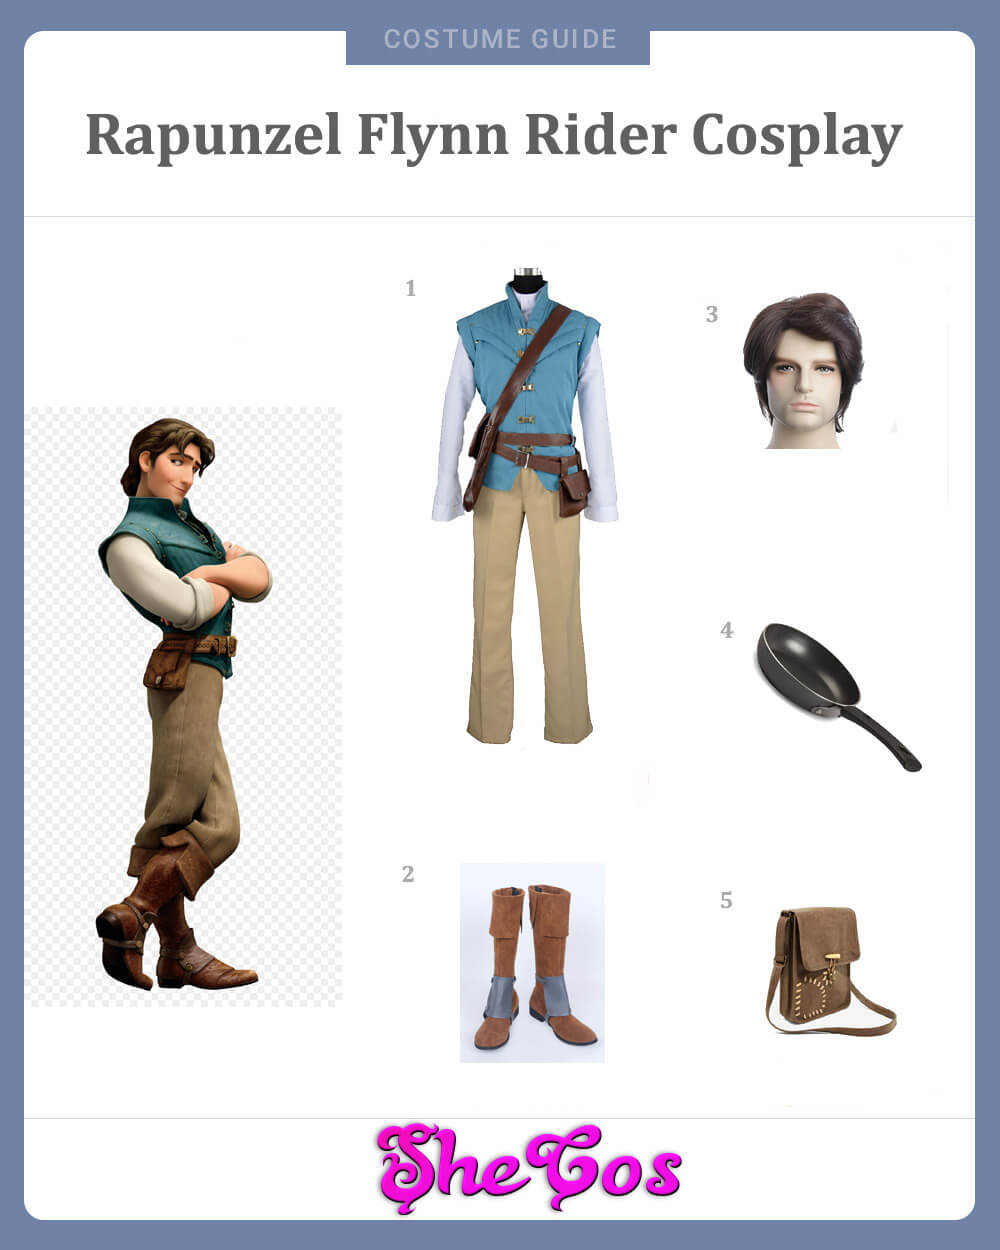 Flynn Rider Cosplay Guide